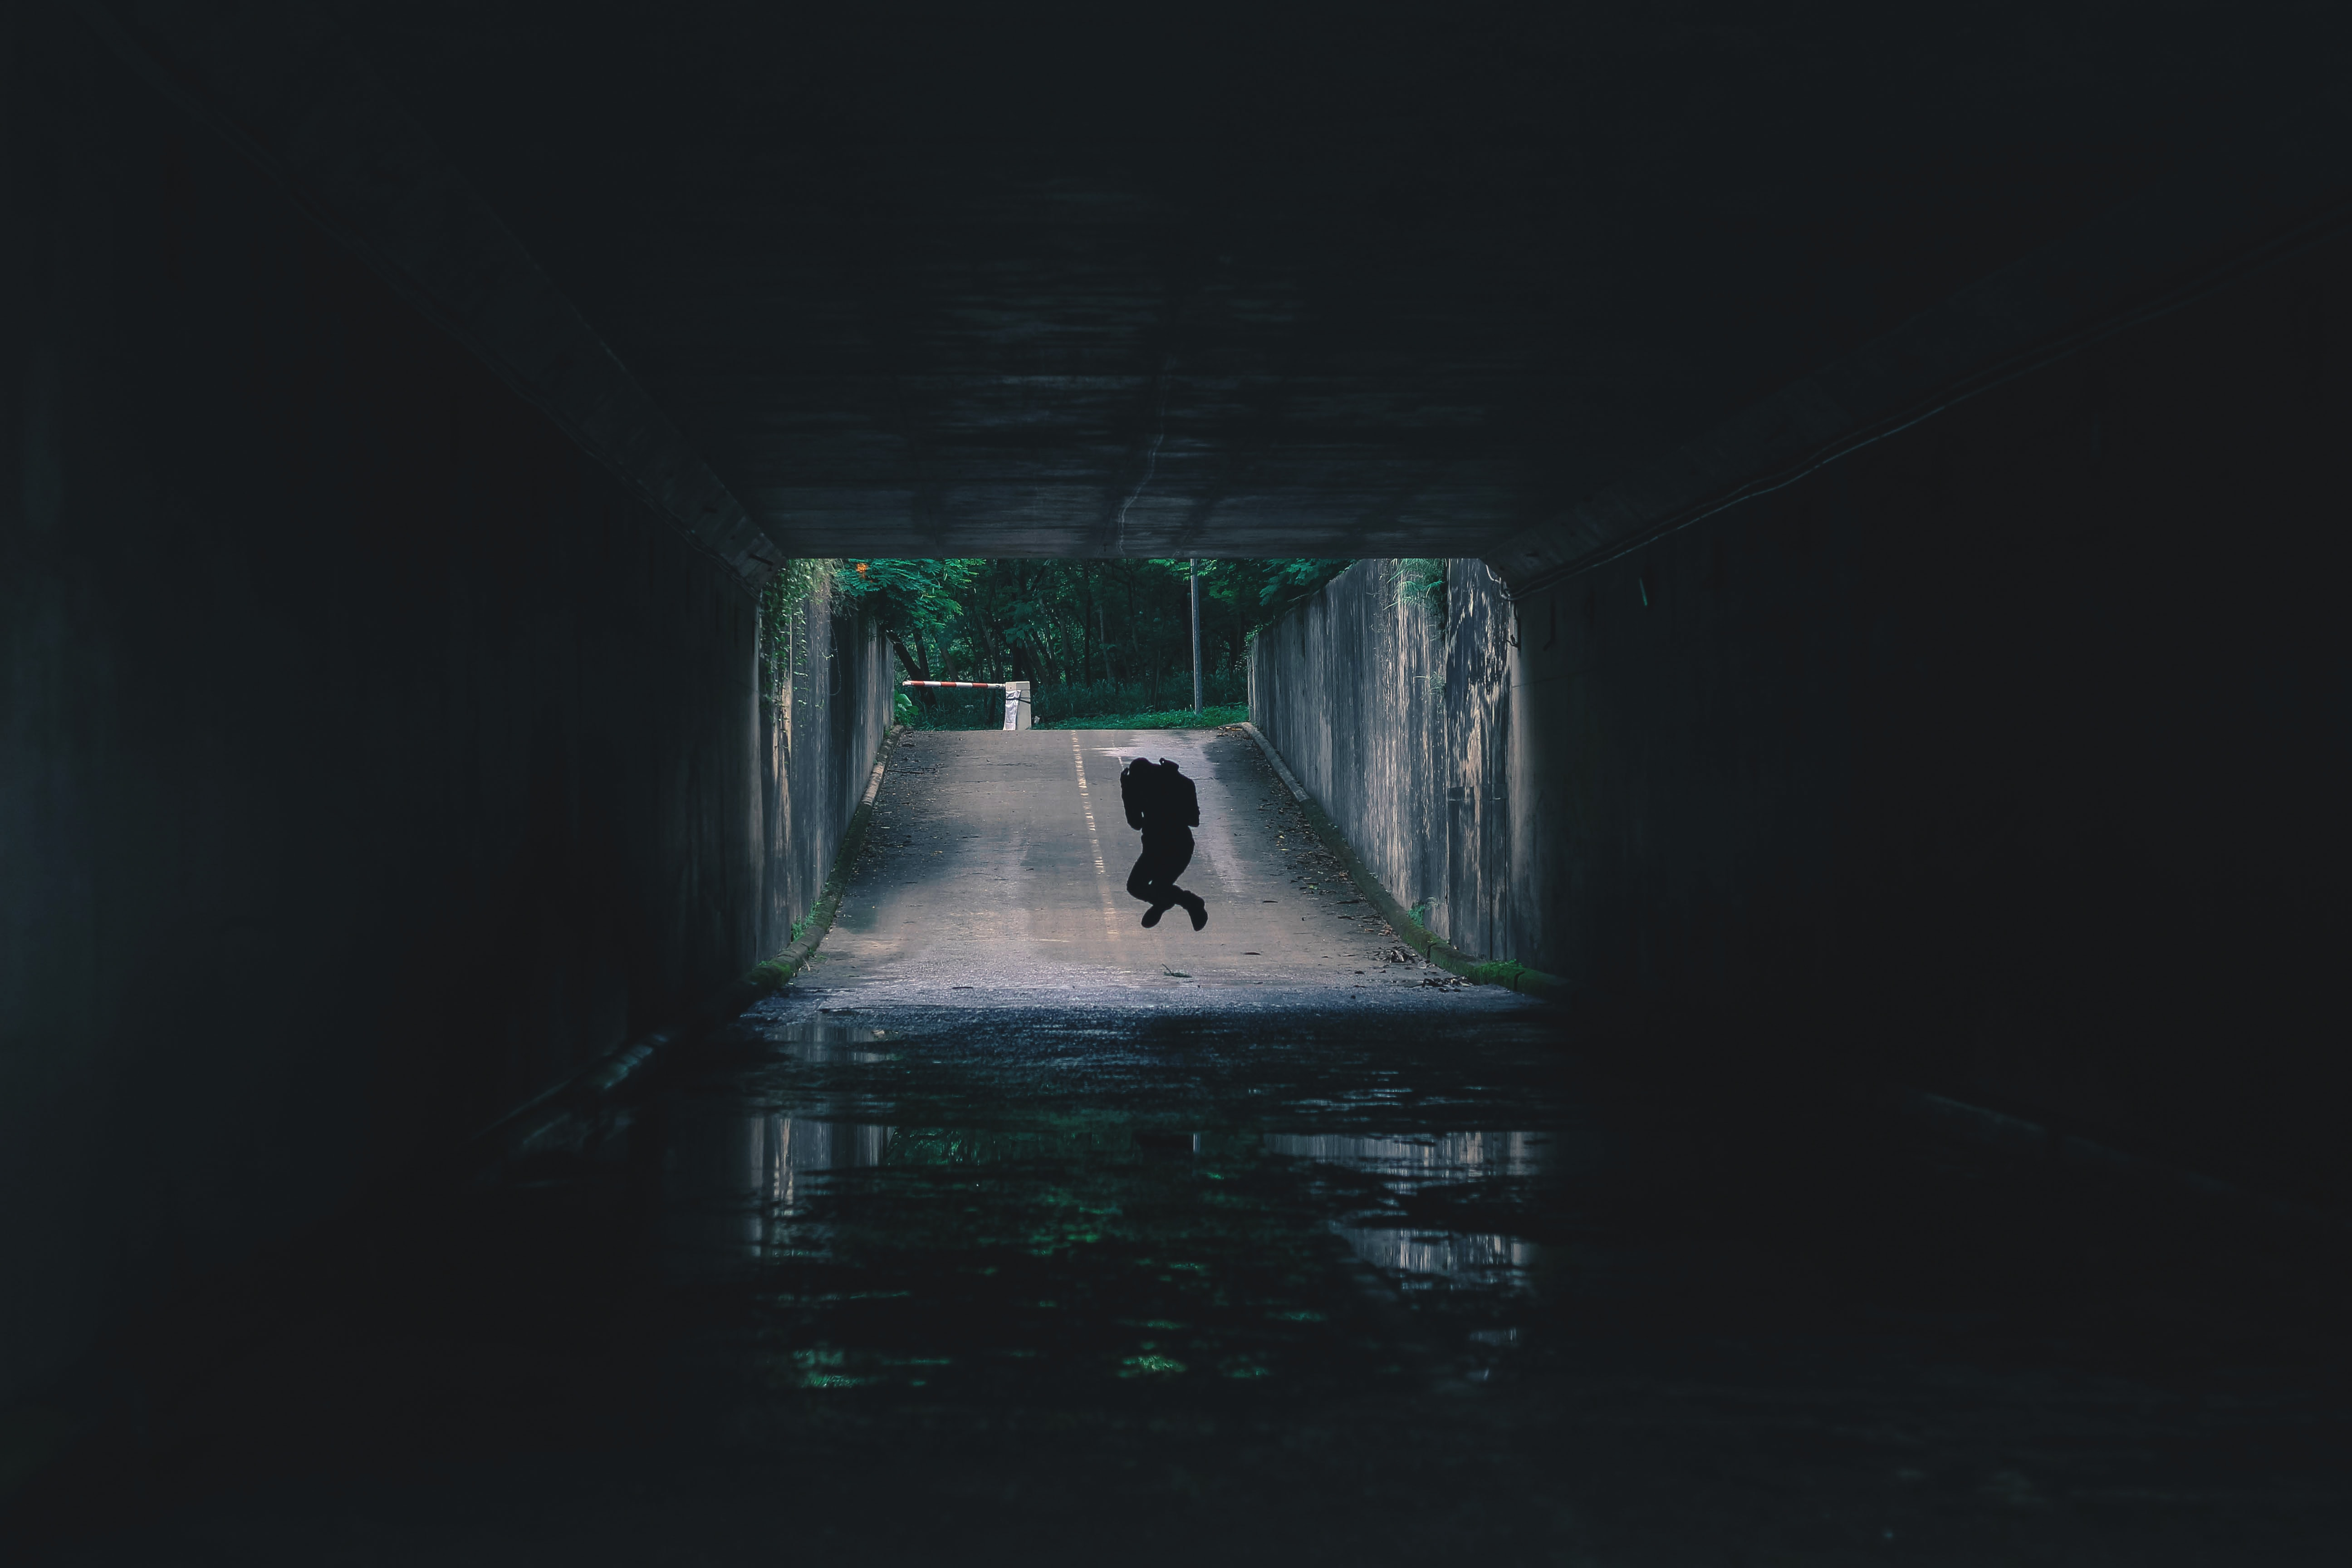 A silhouette of a person hovering above ground in a dark wet tunnel